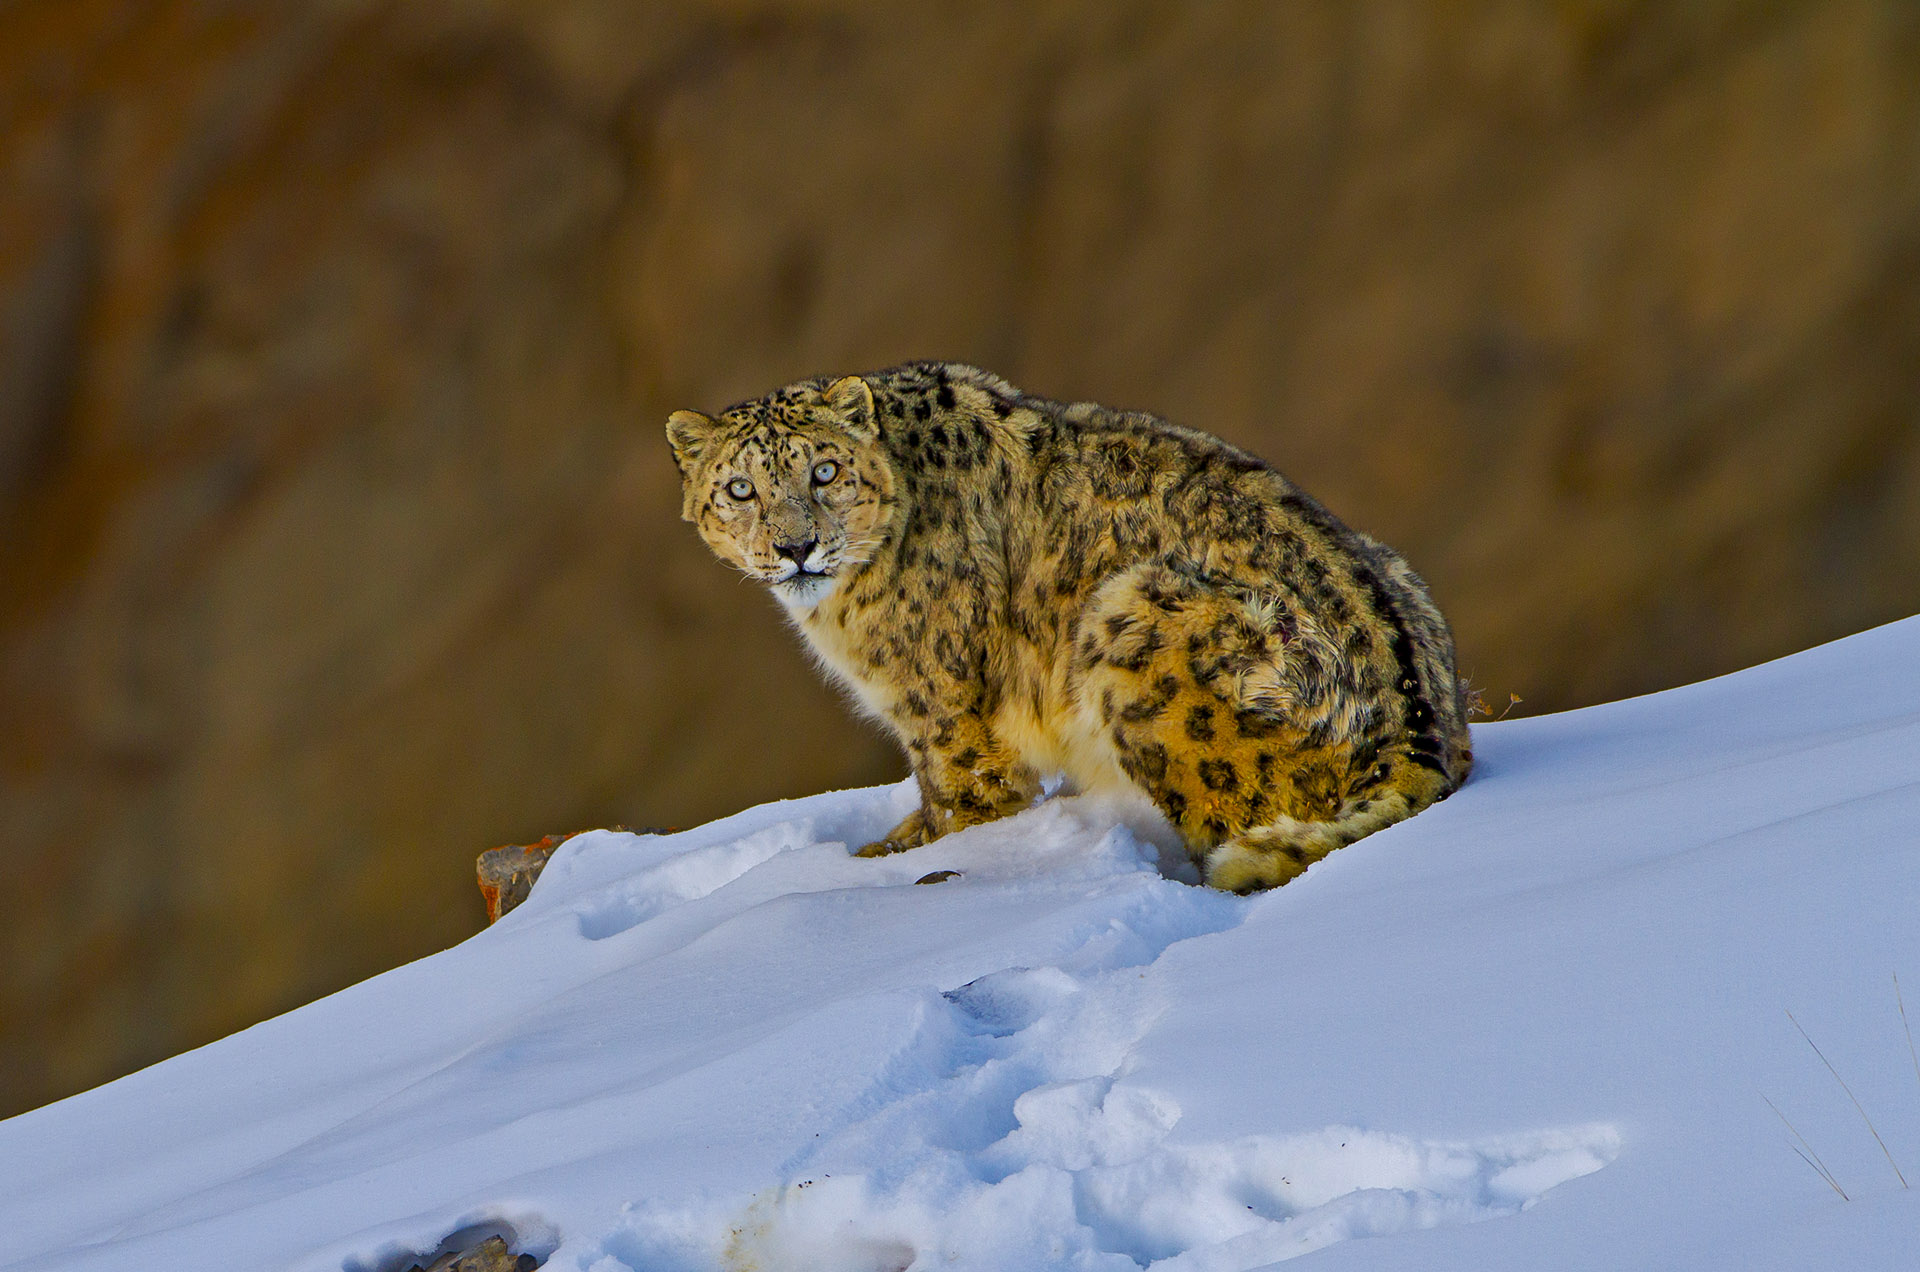 Dhritiman's first-ever snow leopard sighting in 2011 at Spiti